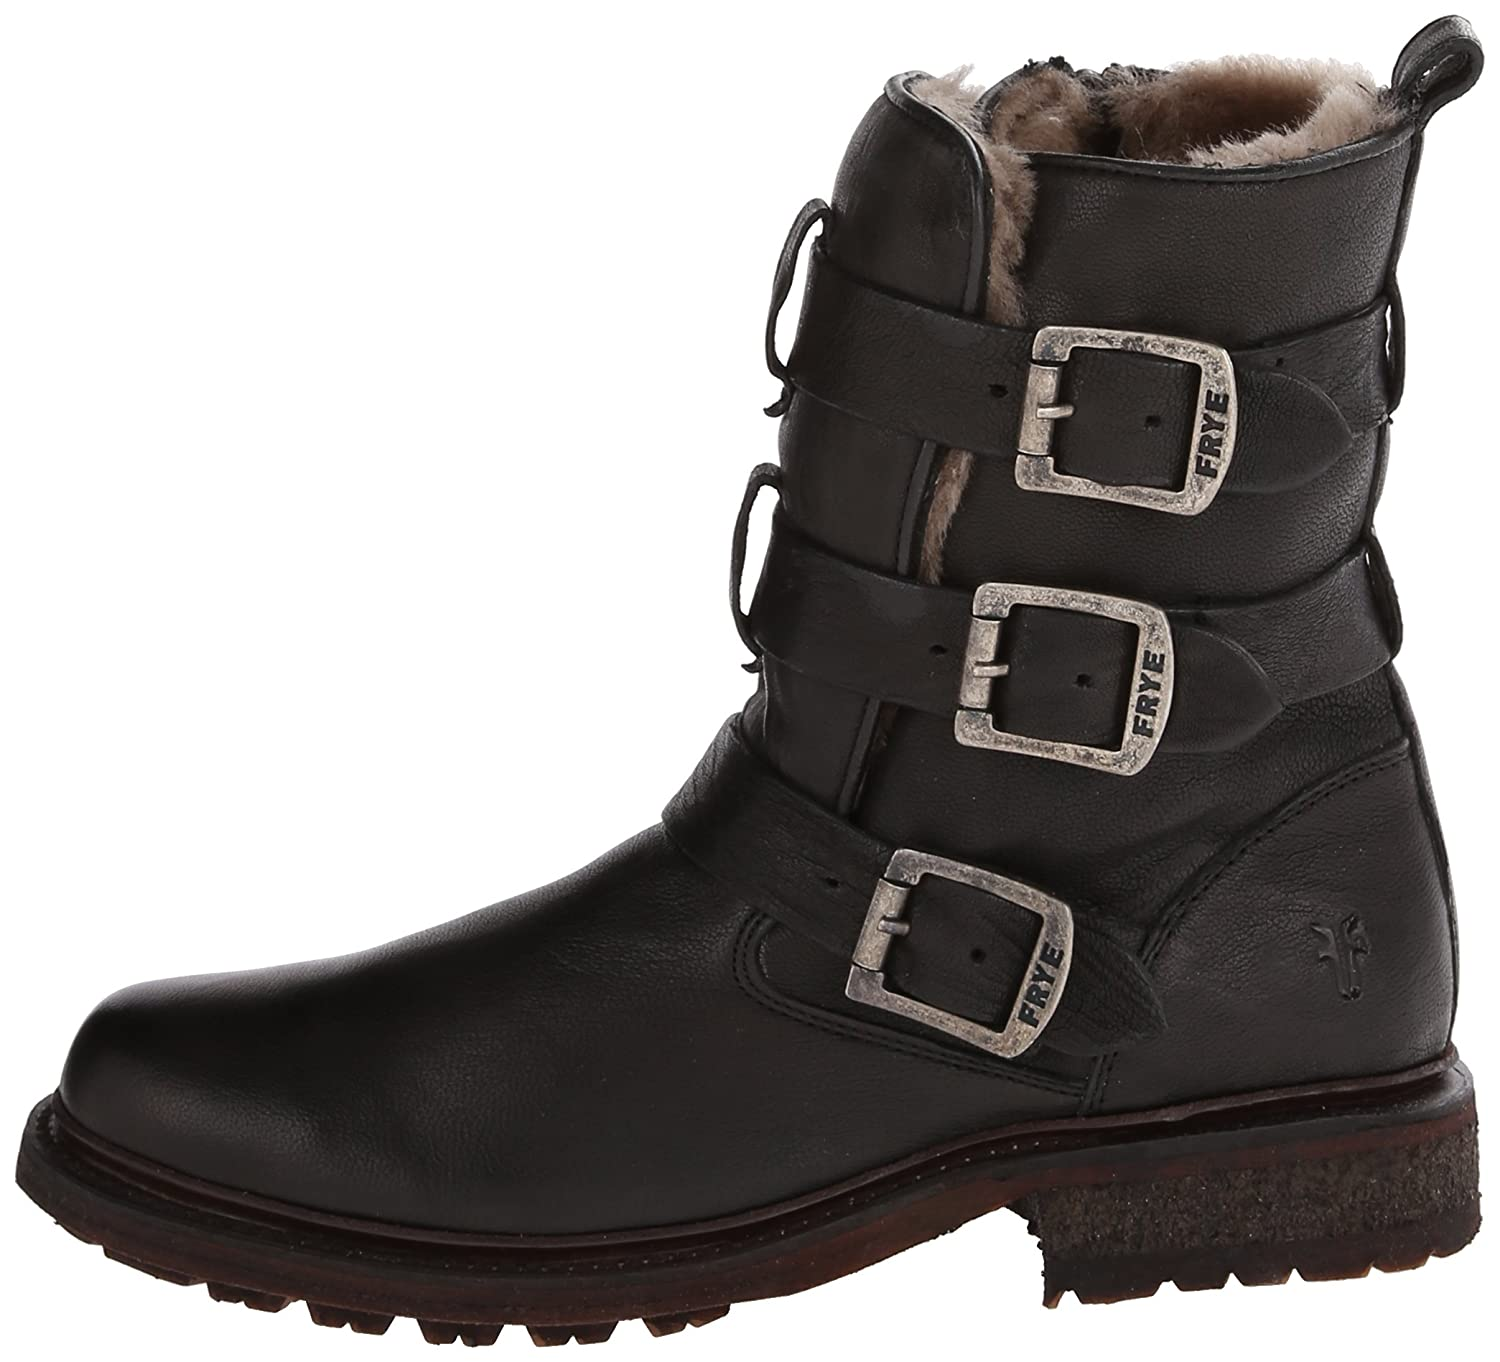 FRYE Women's Valerie Shearling Strappy Ankle Boot B00IMKICXC 5.5 B(M) US|Black-75008